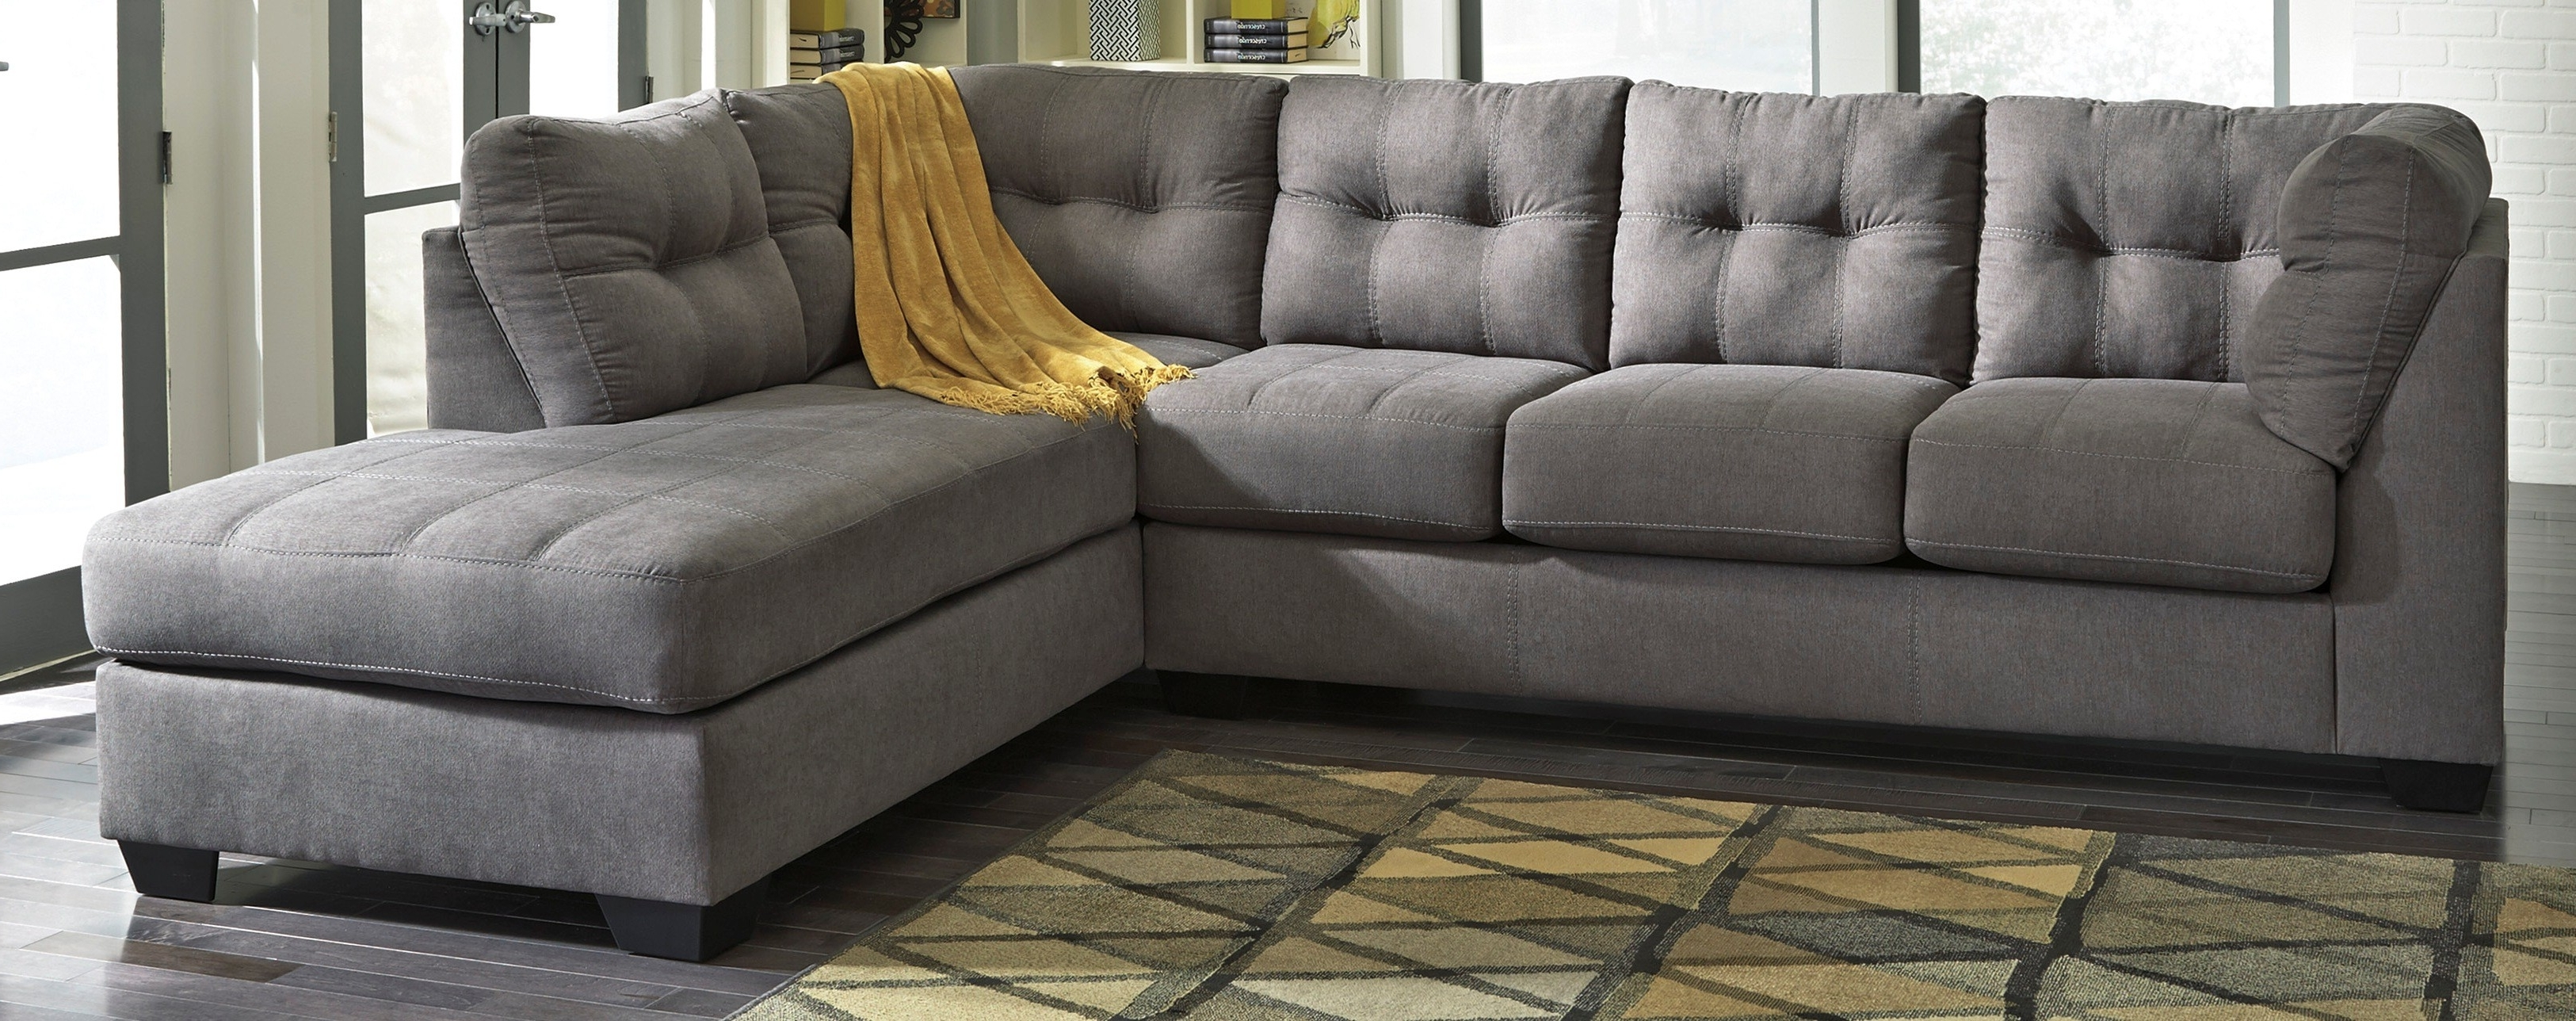 Buy Ashley Furniture 4520066 4520017 Maier Charcoal Raf Corner In Recent Ashley Furniture Sectionals With Chaise (View 14 of 15)